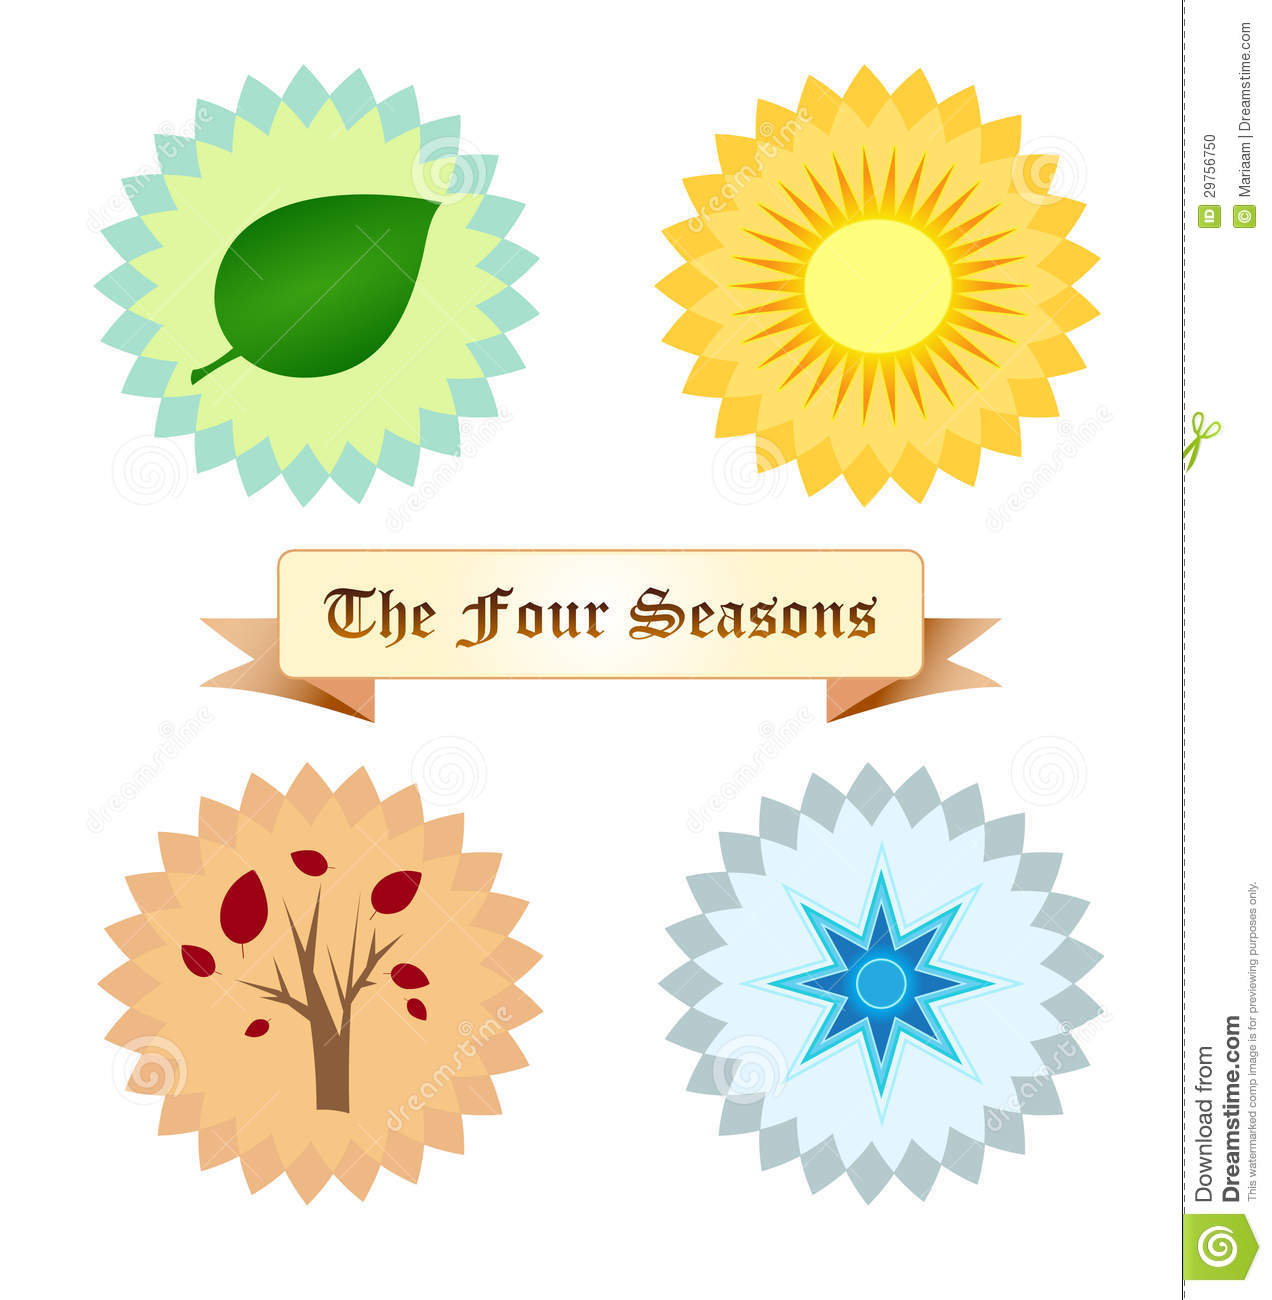 Four seasons symbols royalty free illustration 47700711 - Autumn plowing time all set for winter ...